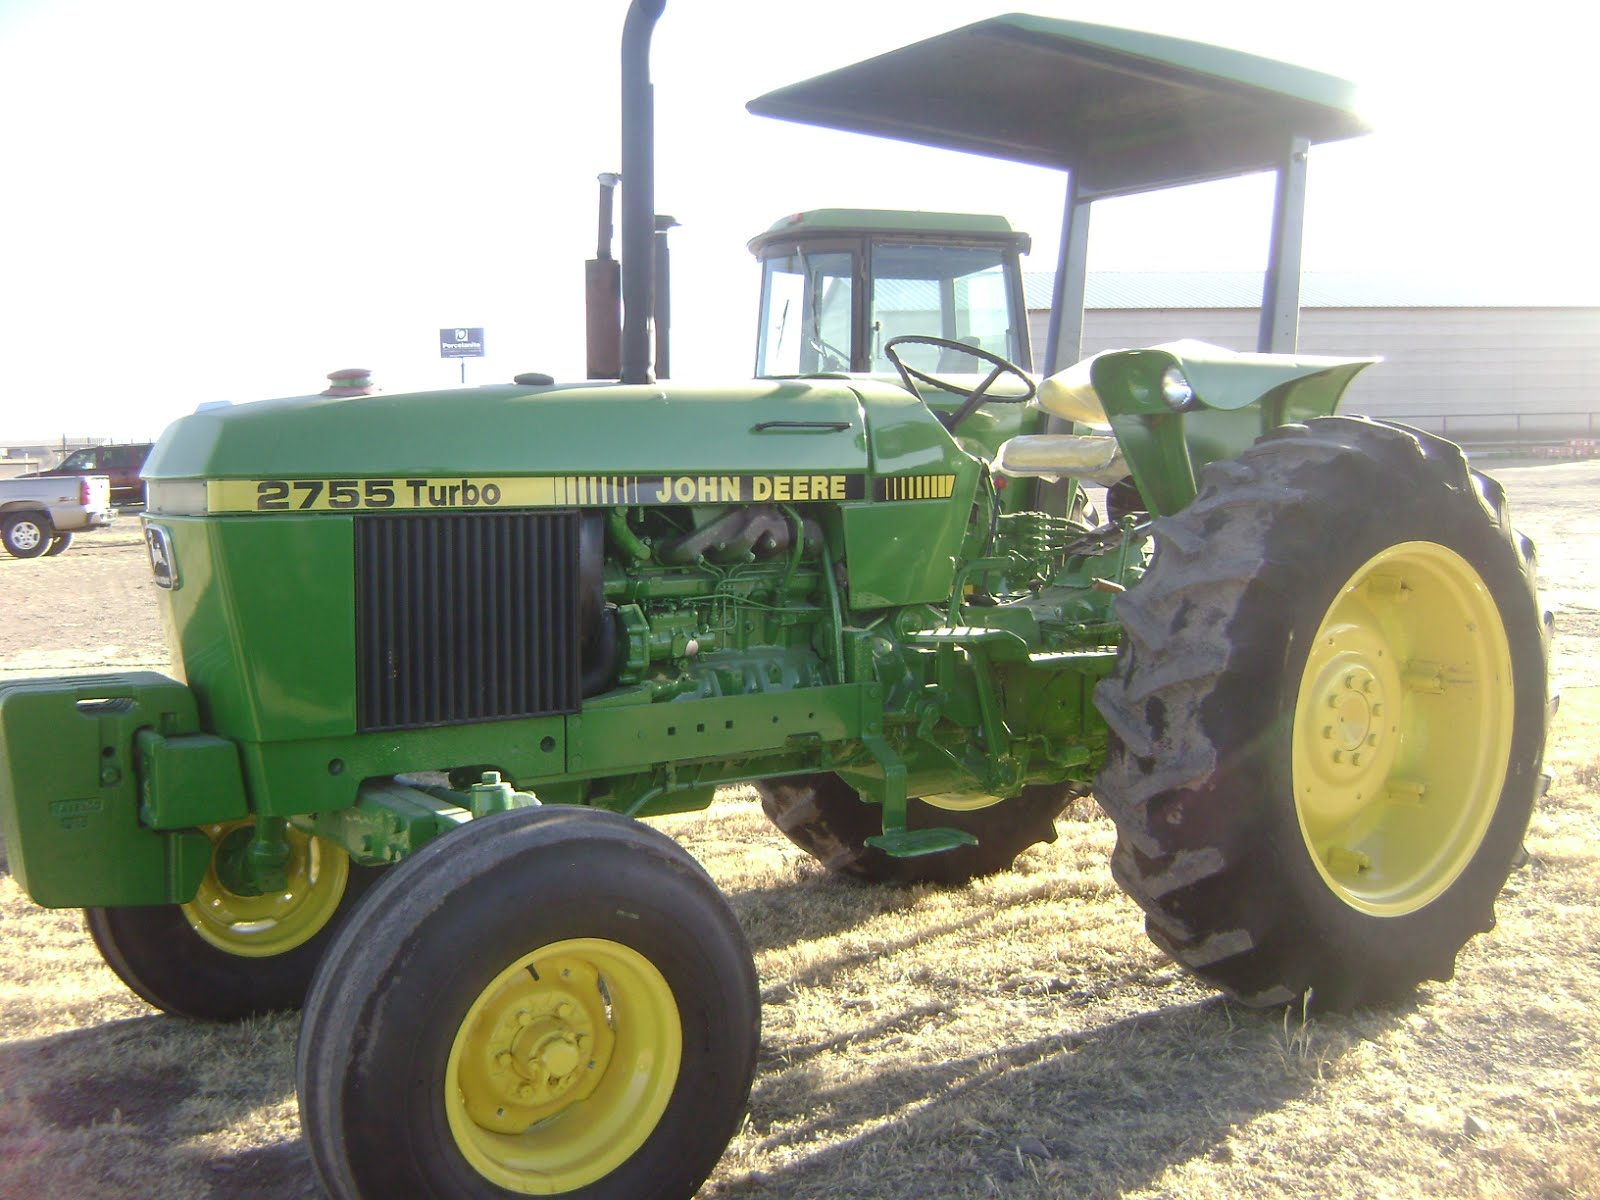 Maquinaria Agricola Industrial  Tractor John Deere 2755  1987   14 200 Dlls  7429 Hrs  Serie 576142l